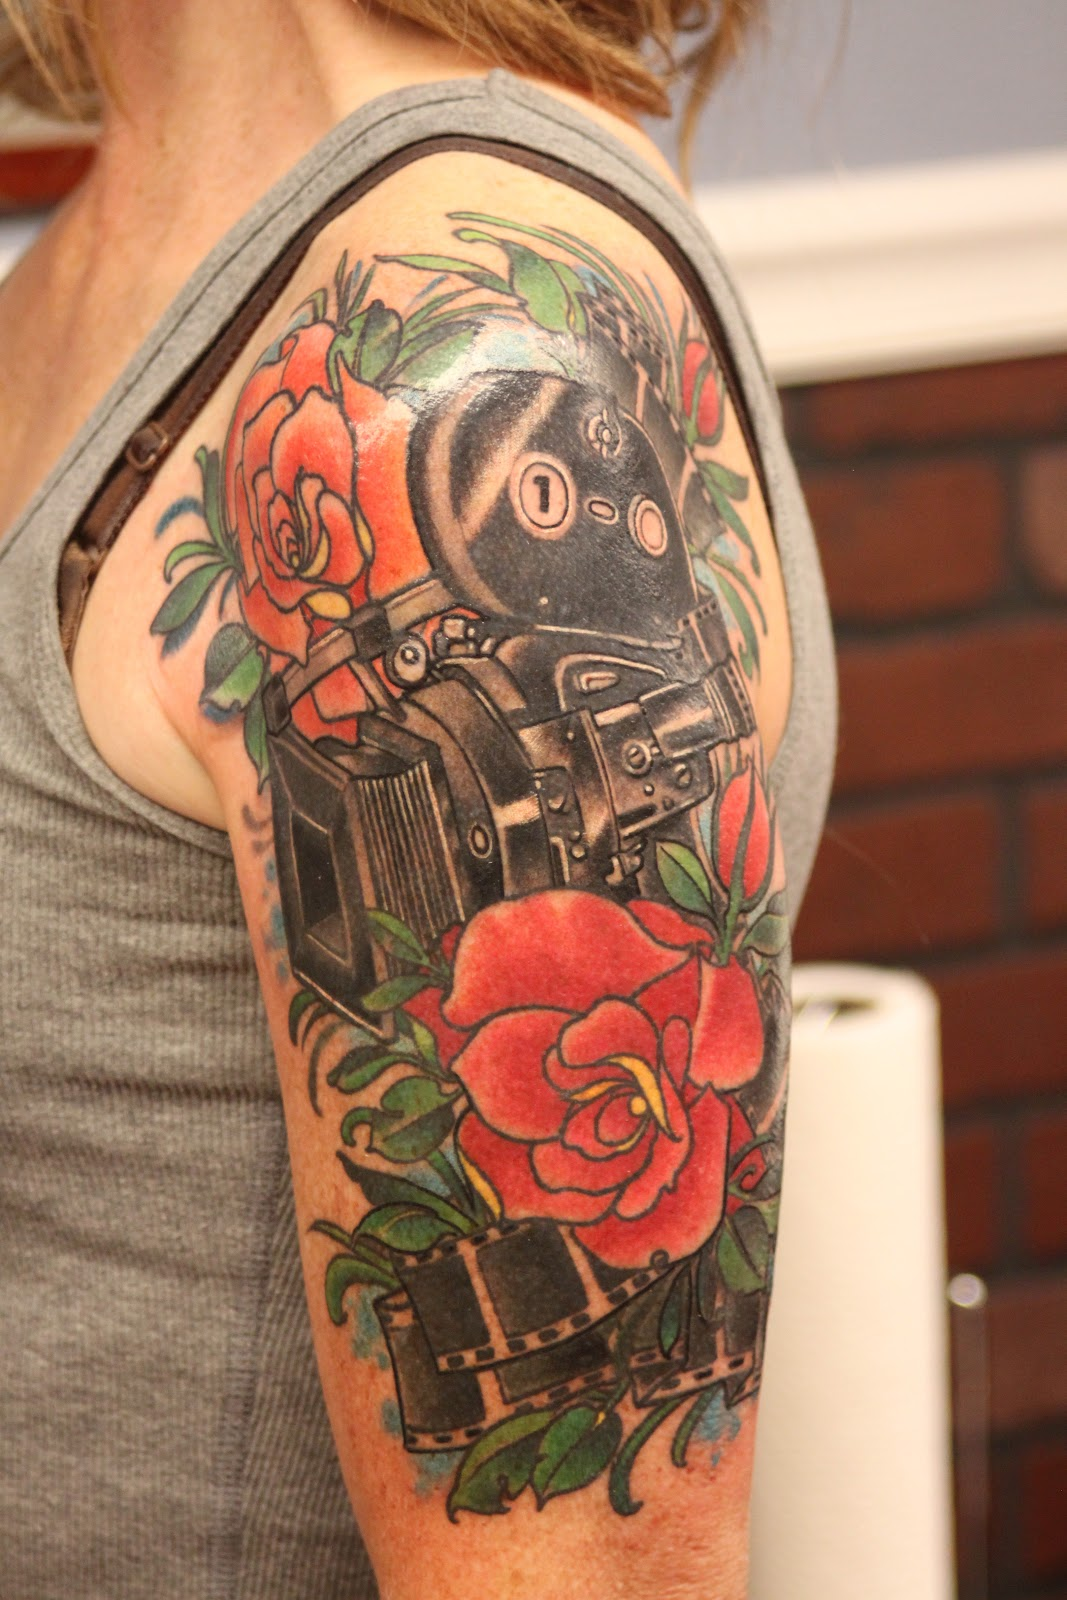 The Real Tattoo 2012